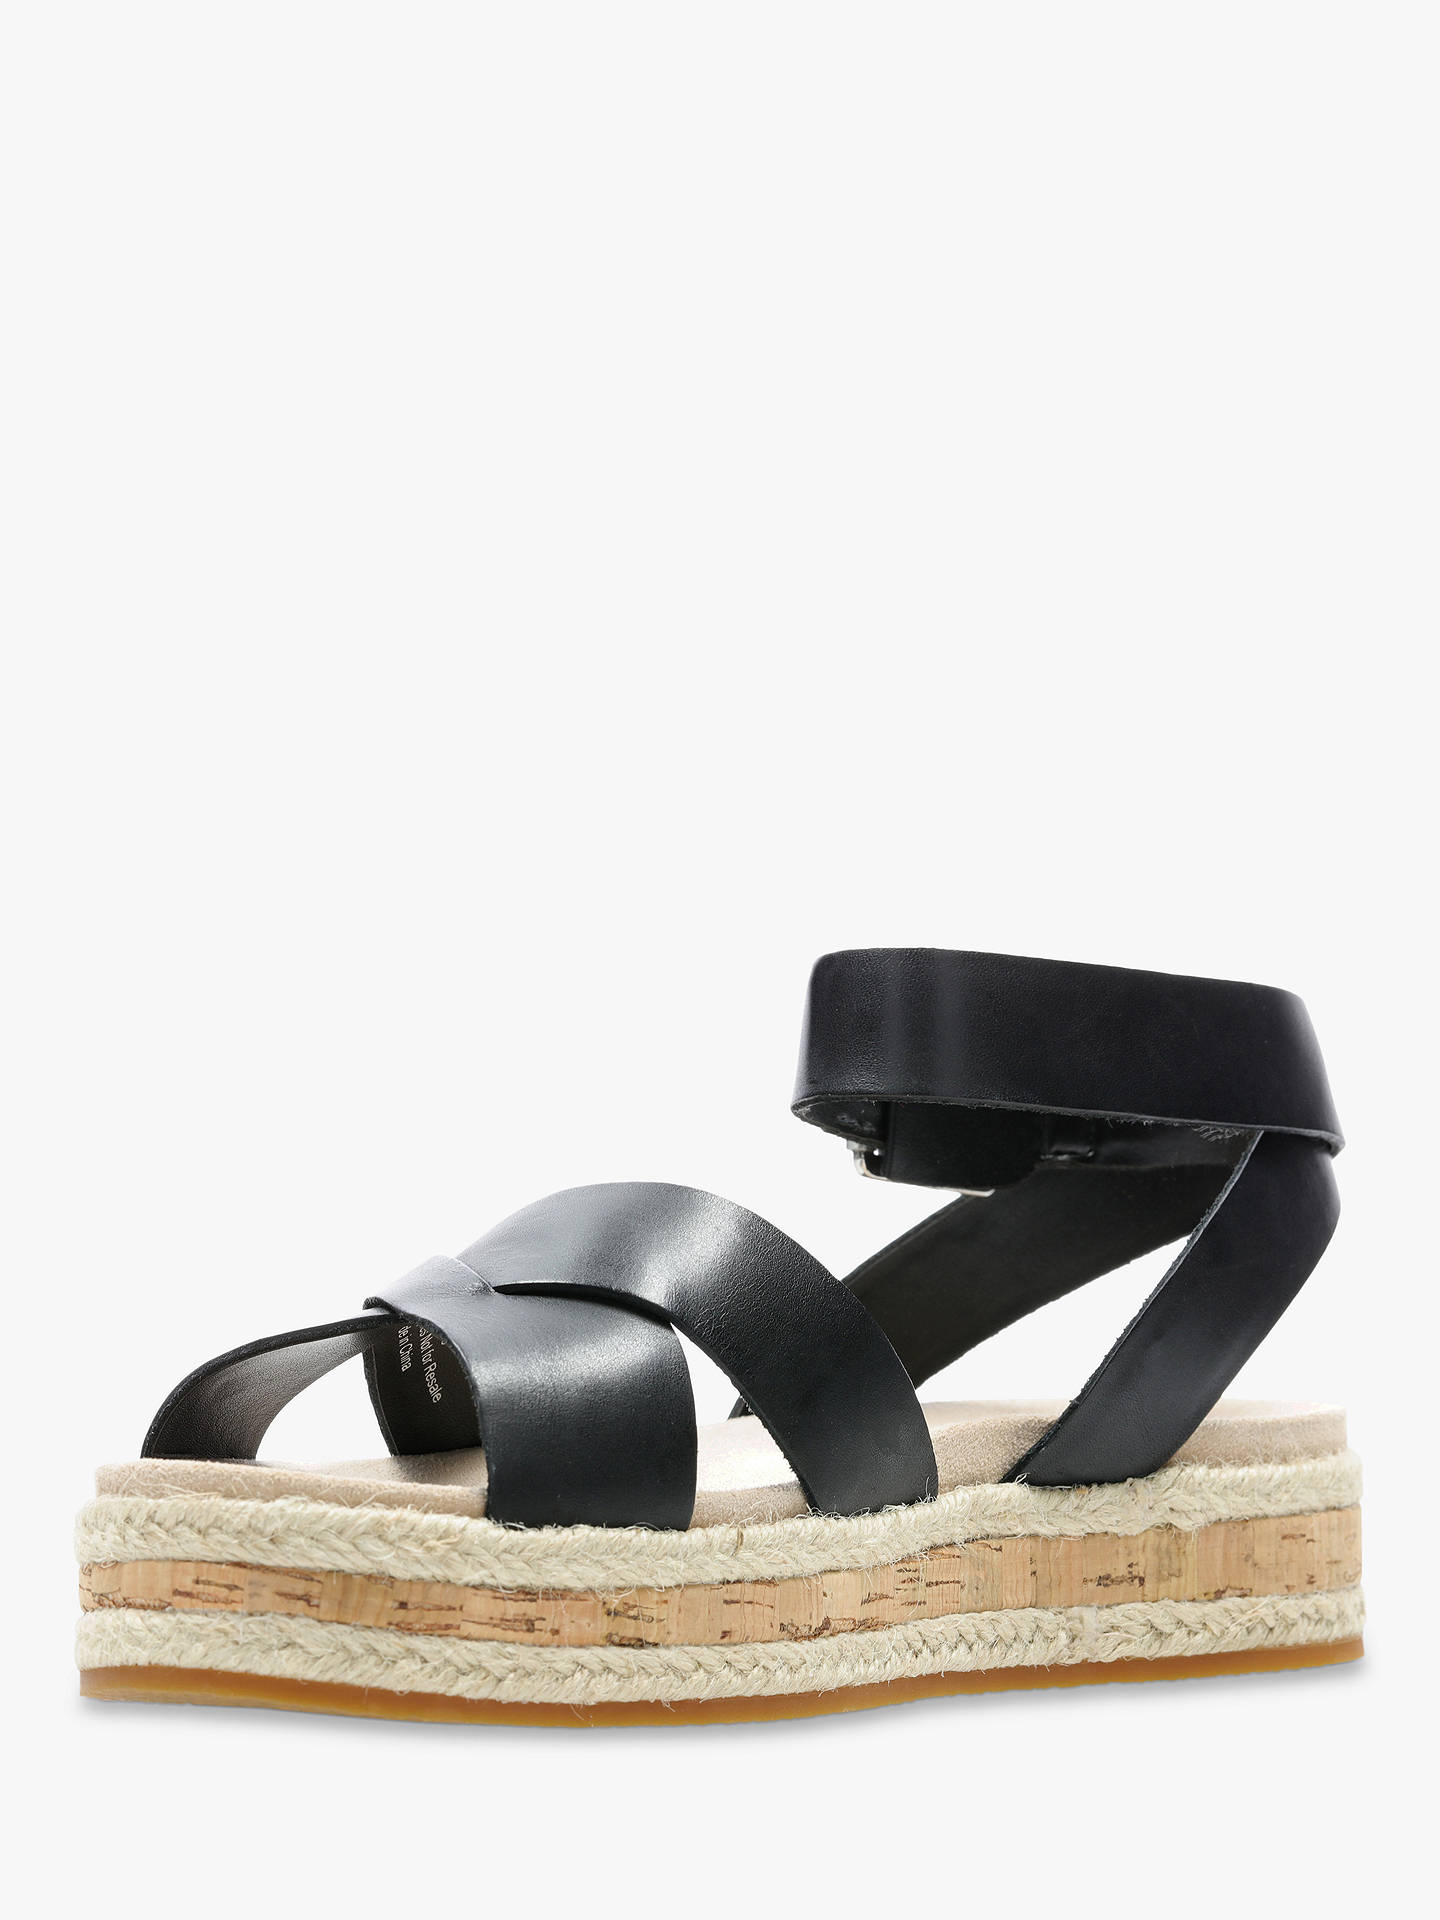 Buy Clarks Botanics Poppy Sandals, Black Leather, 3 Online at johnlewis.com